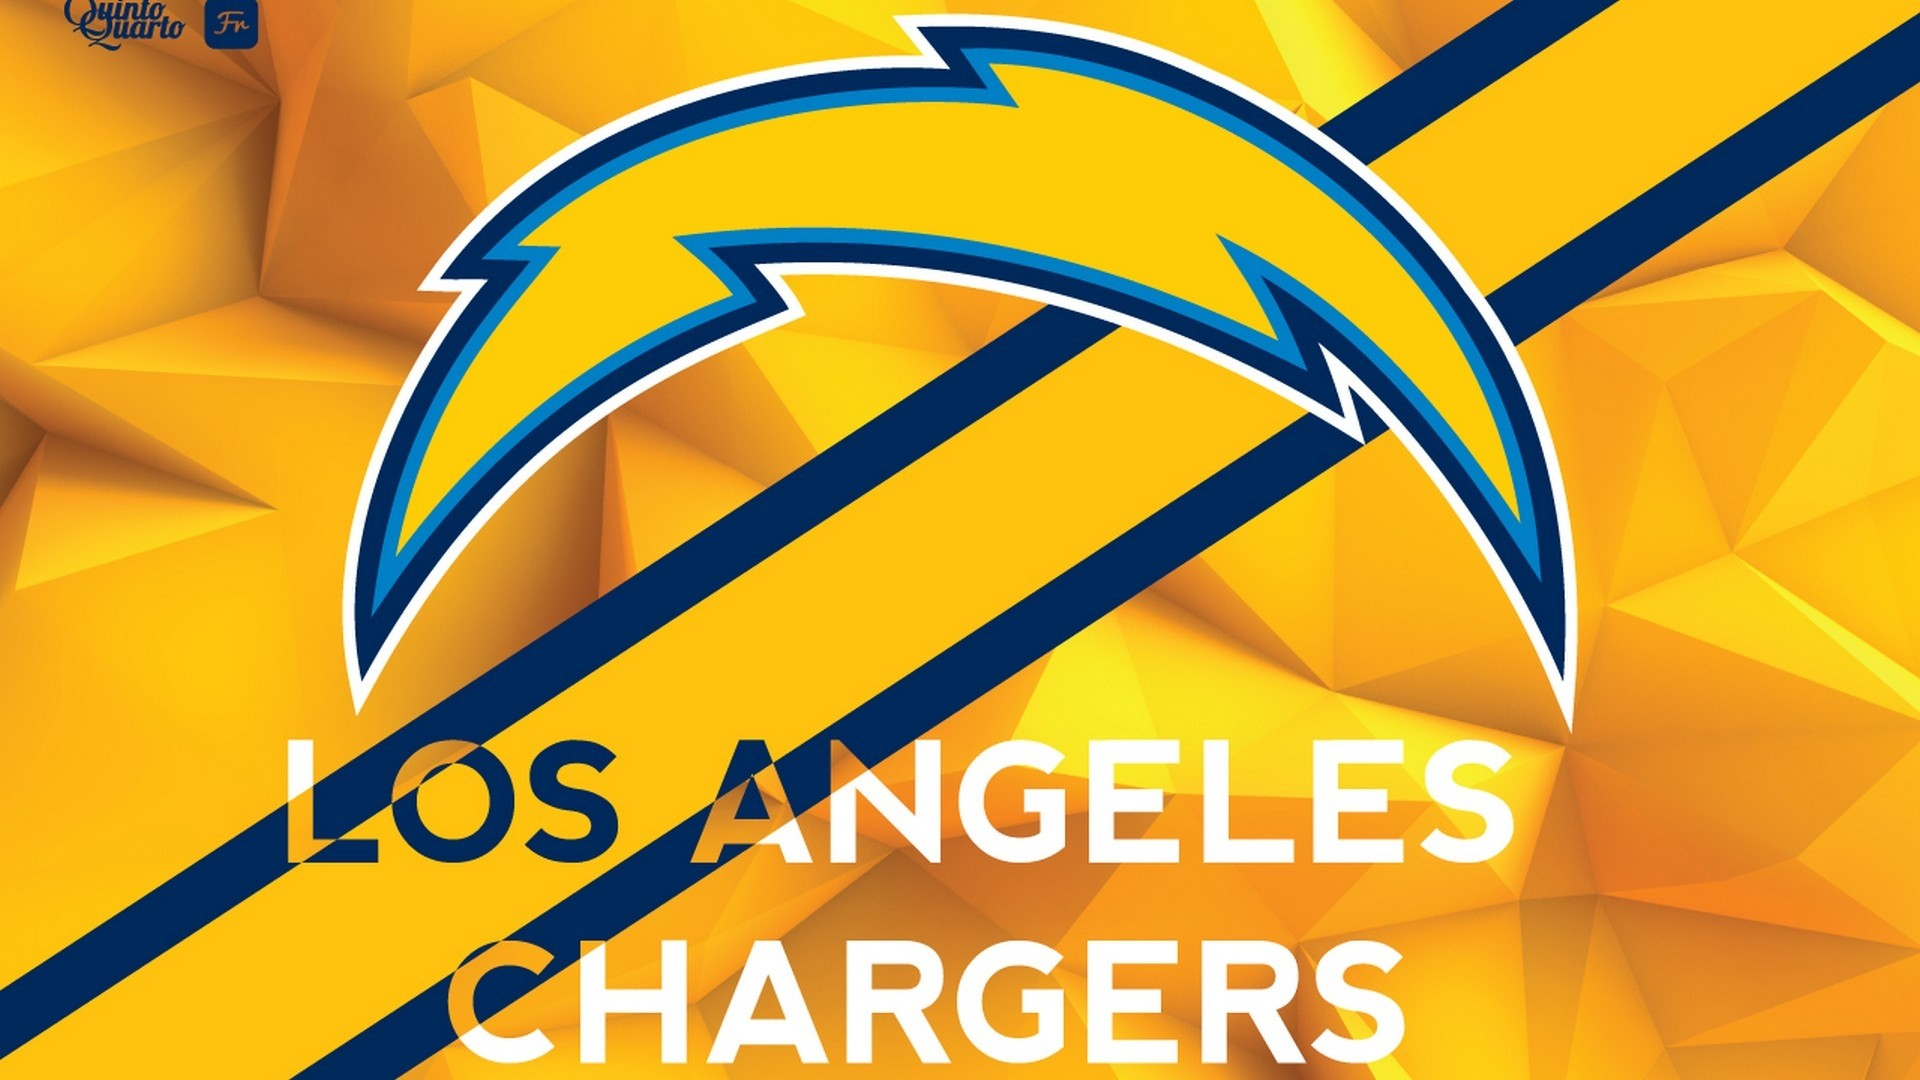 Chargers Wallpaper Picture hd